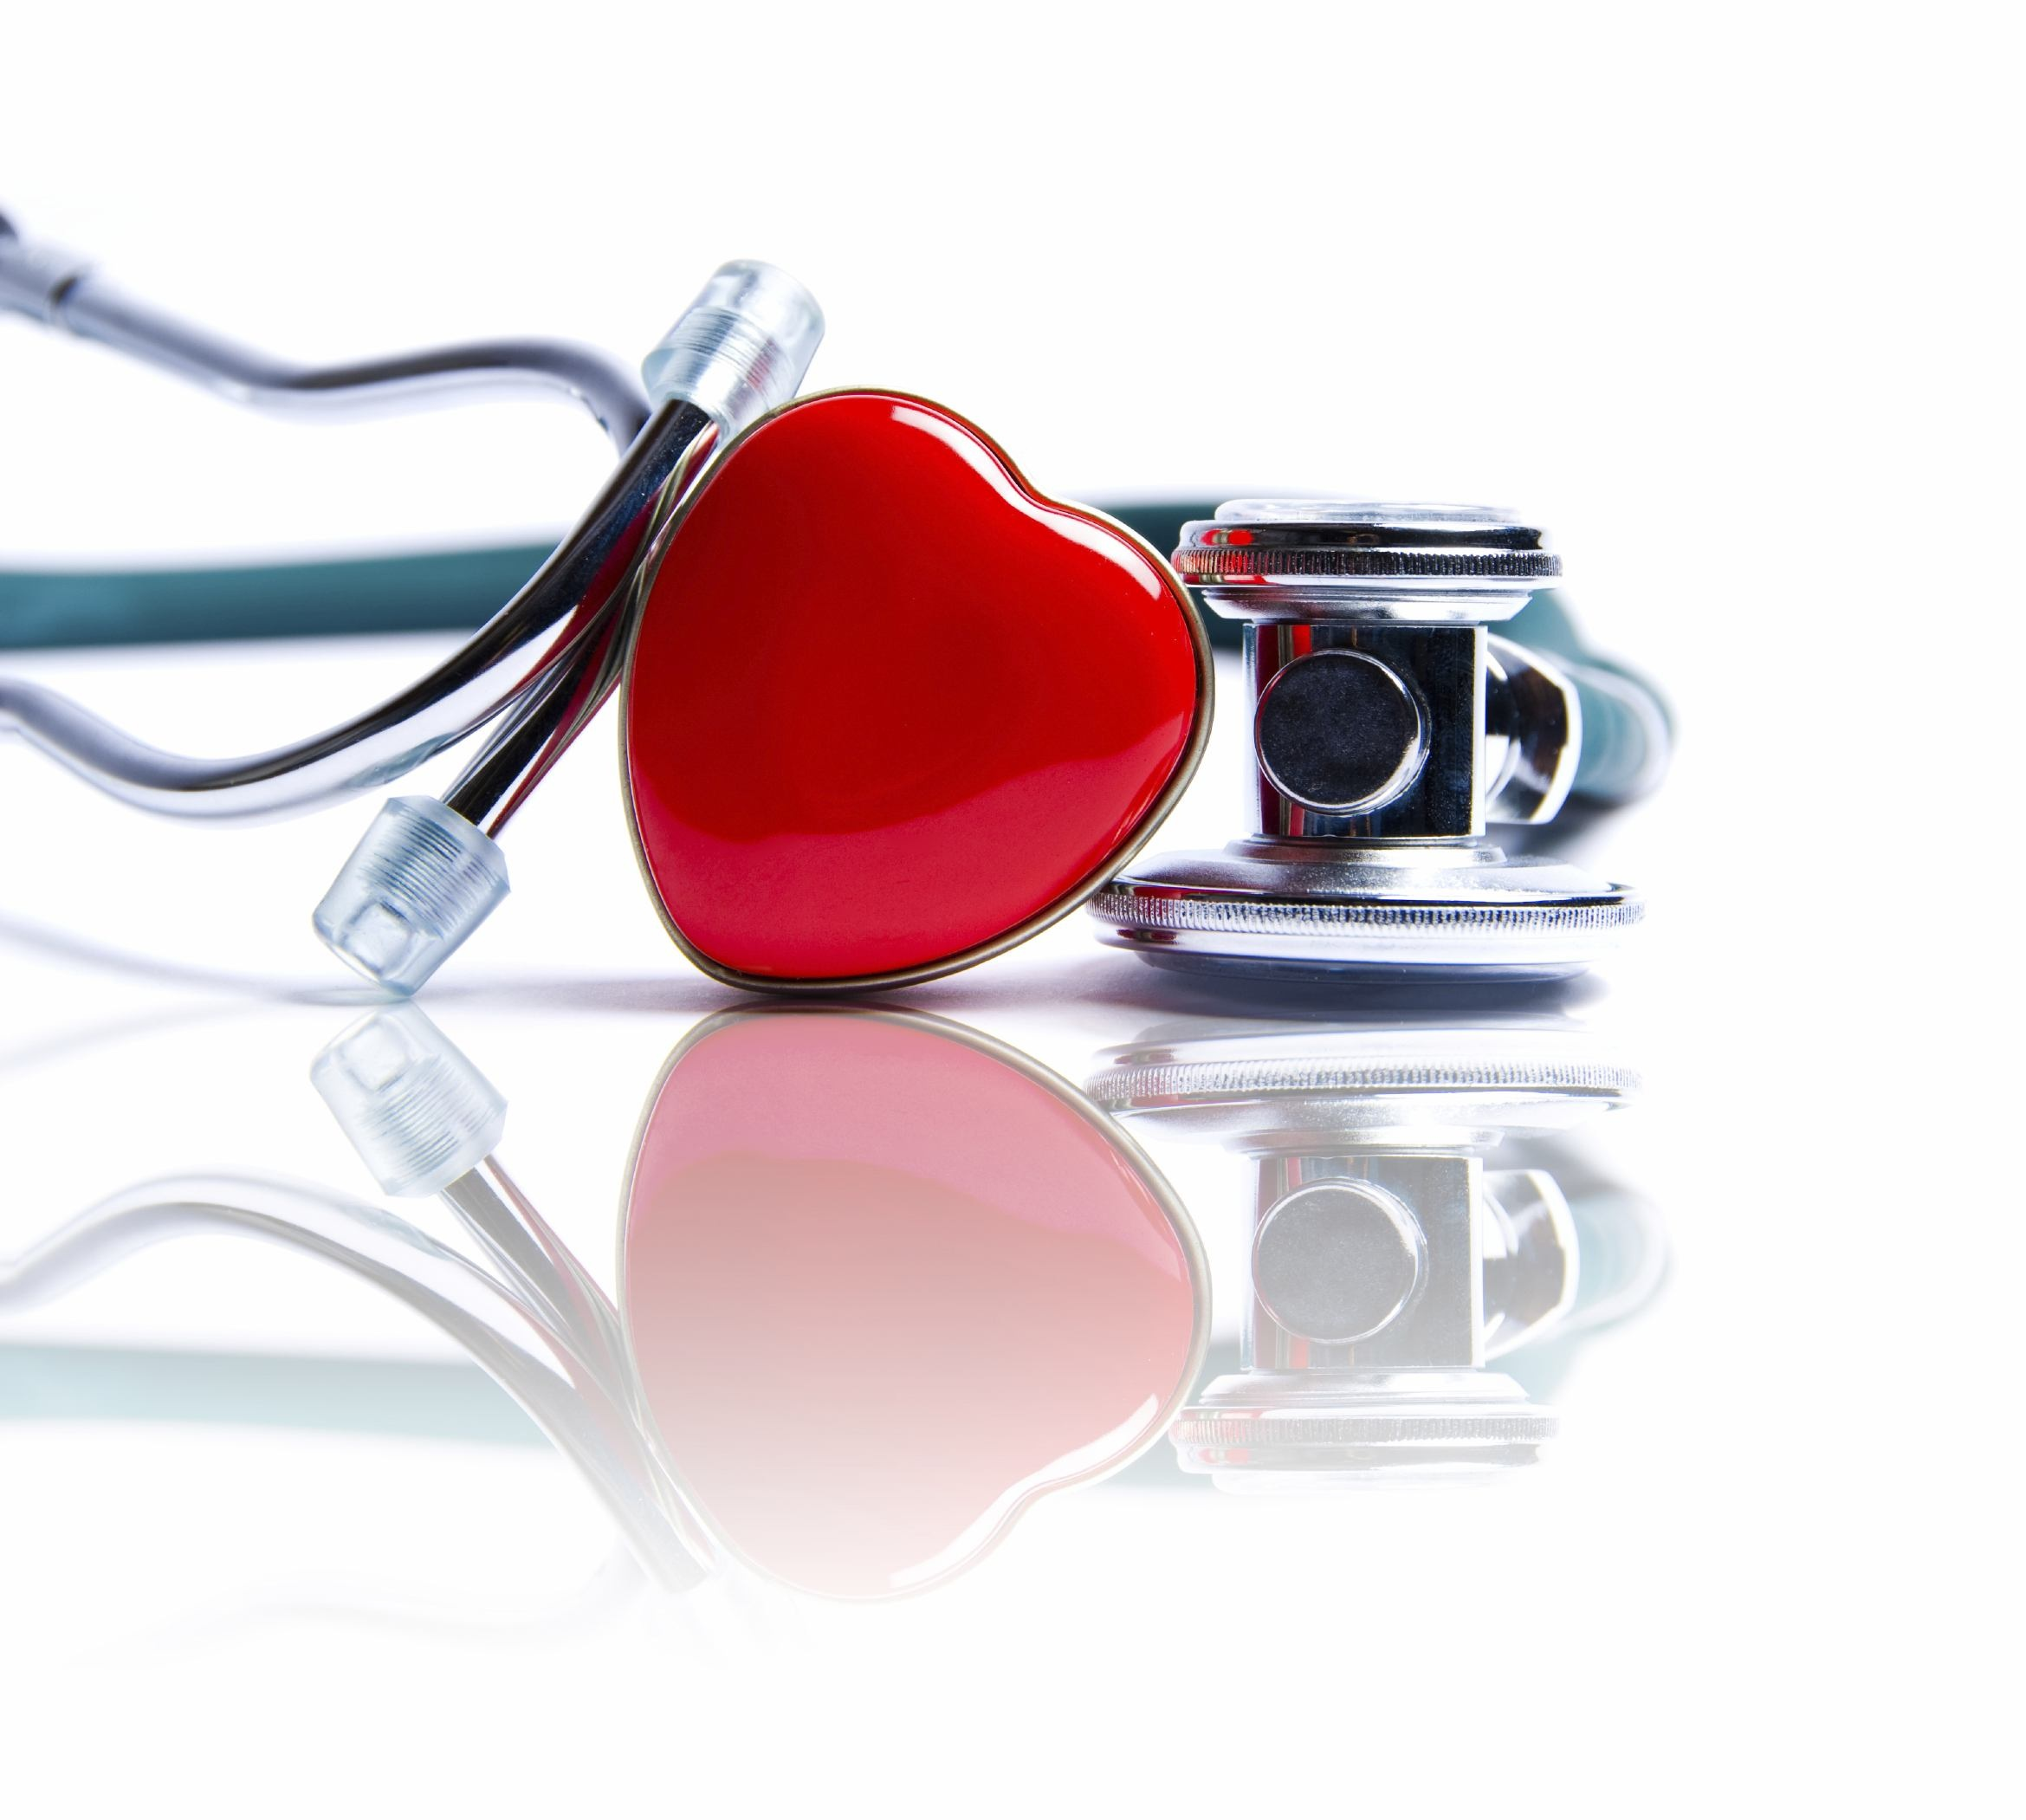 Cardio Patients Have More Than 98% Med Adherence With The Right Follow-Up